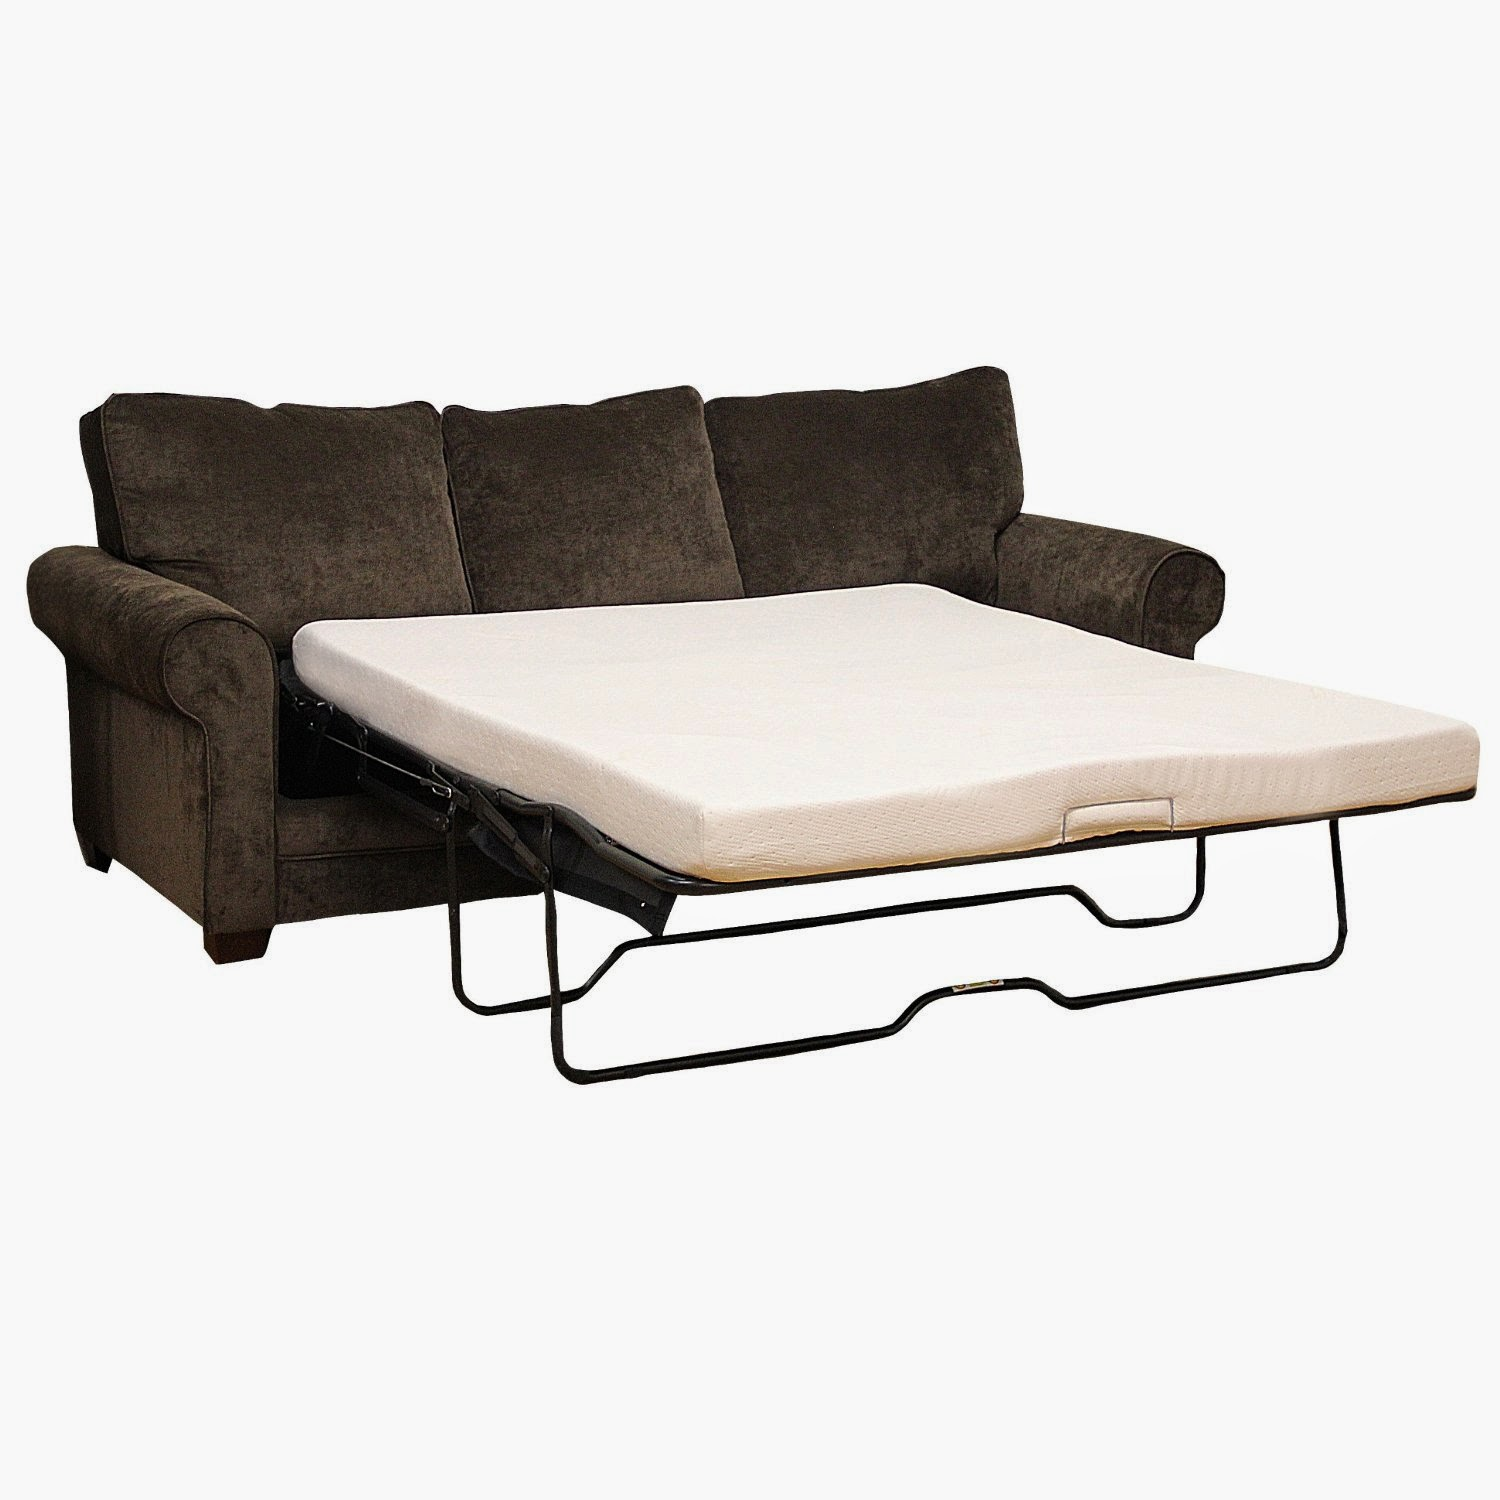 Fold Out Chair Sofa Fold Away Bed Kids Fold Out Chair Sofa With Fold Bed Mattress Sale